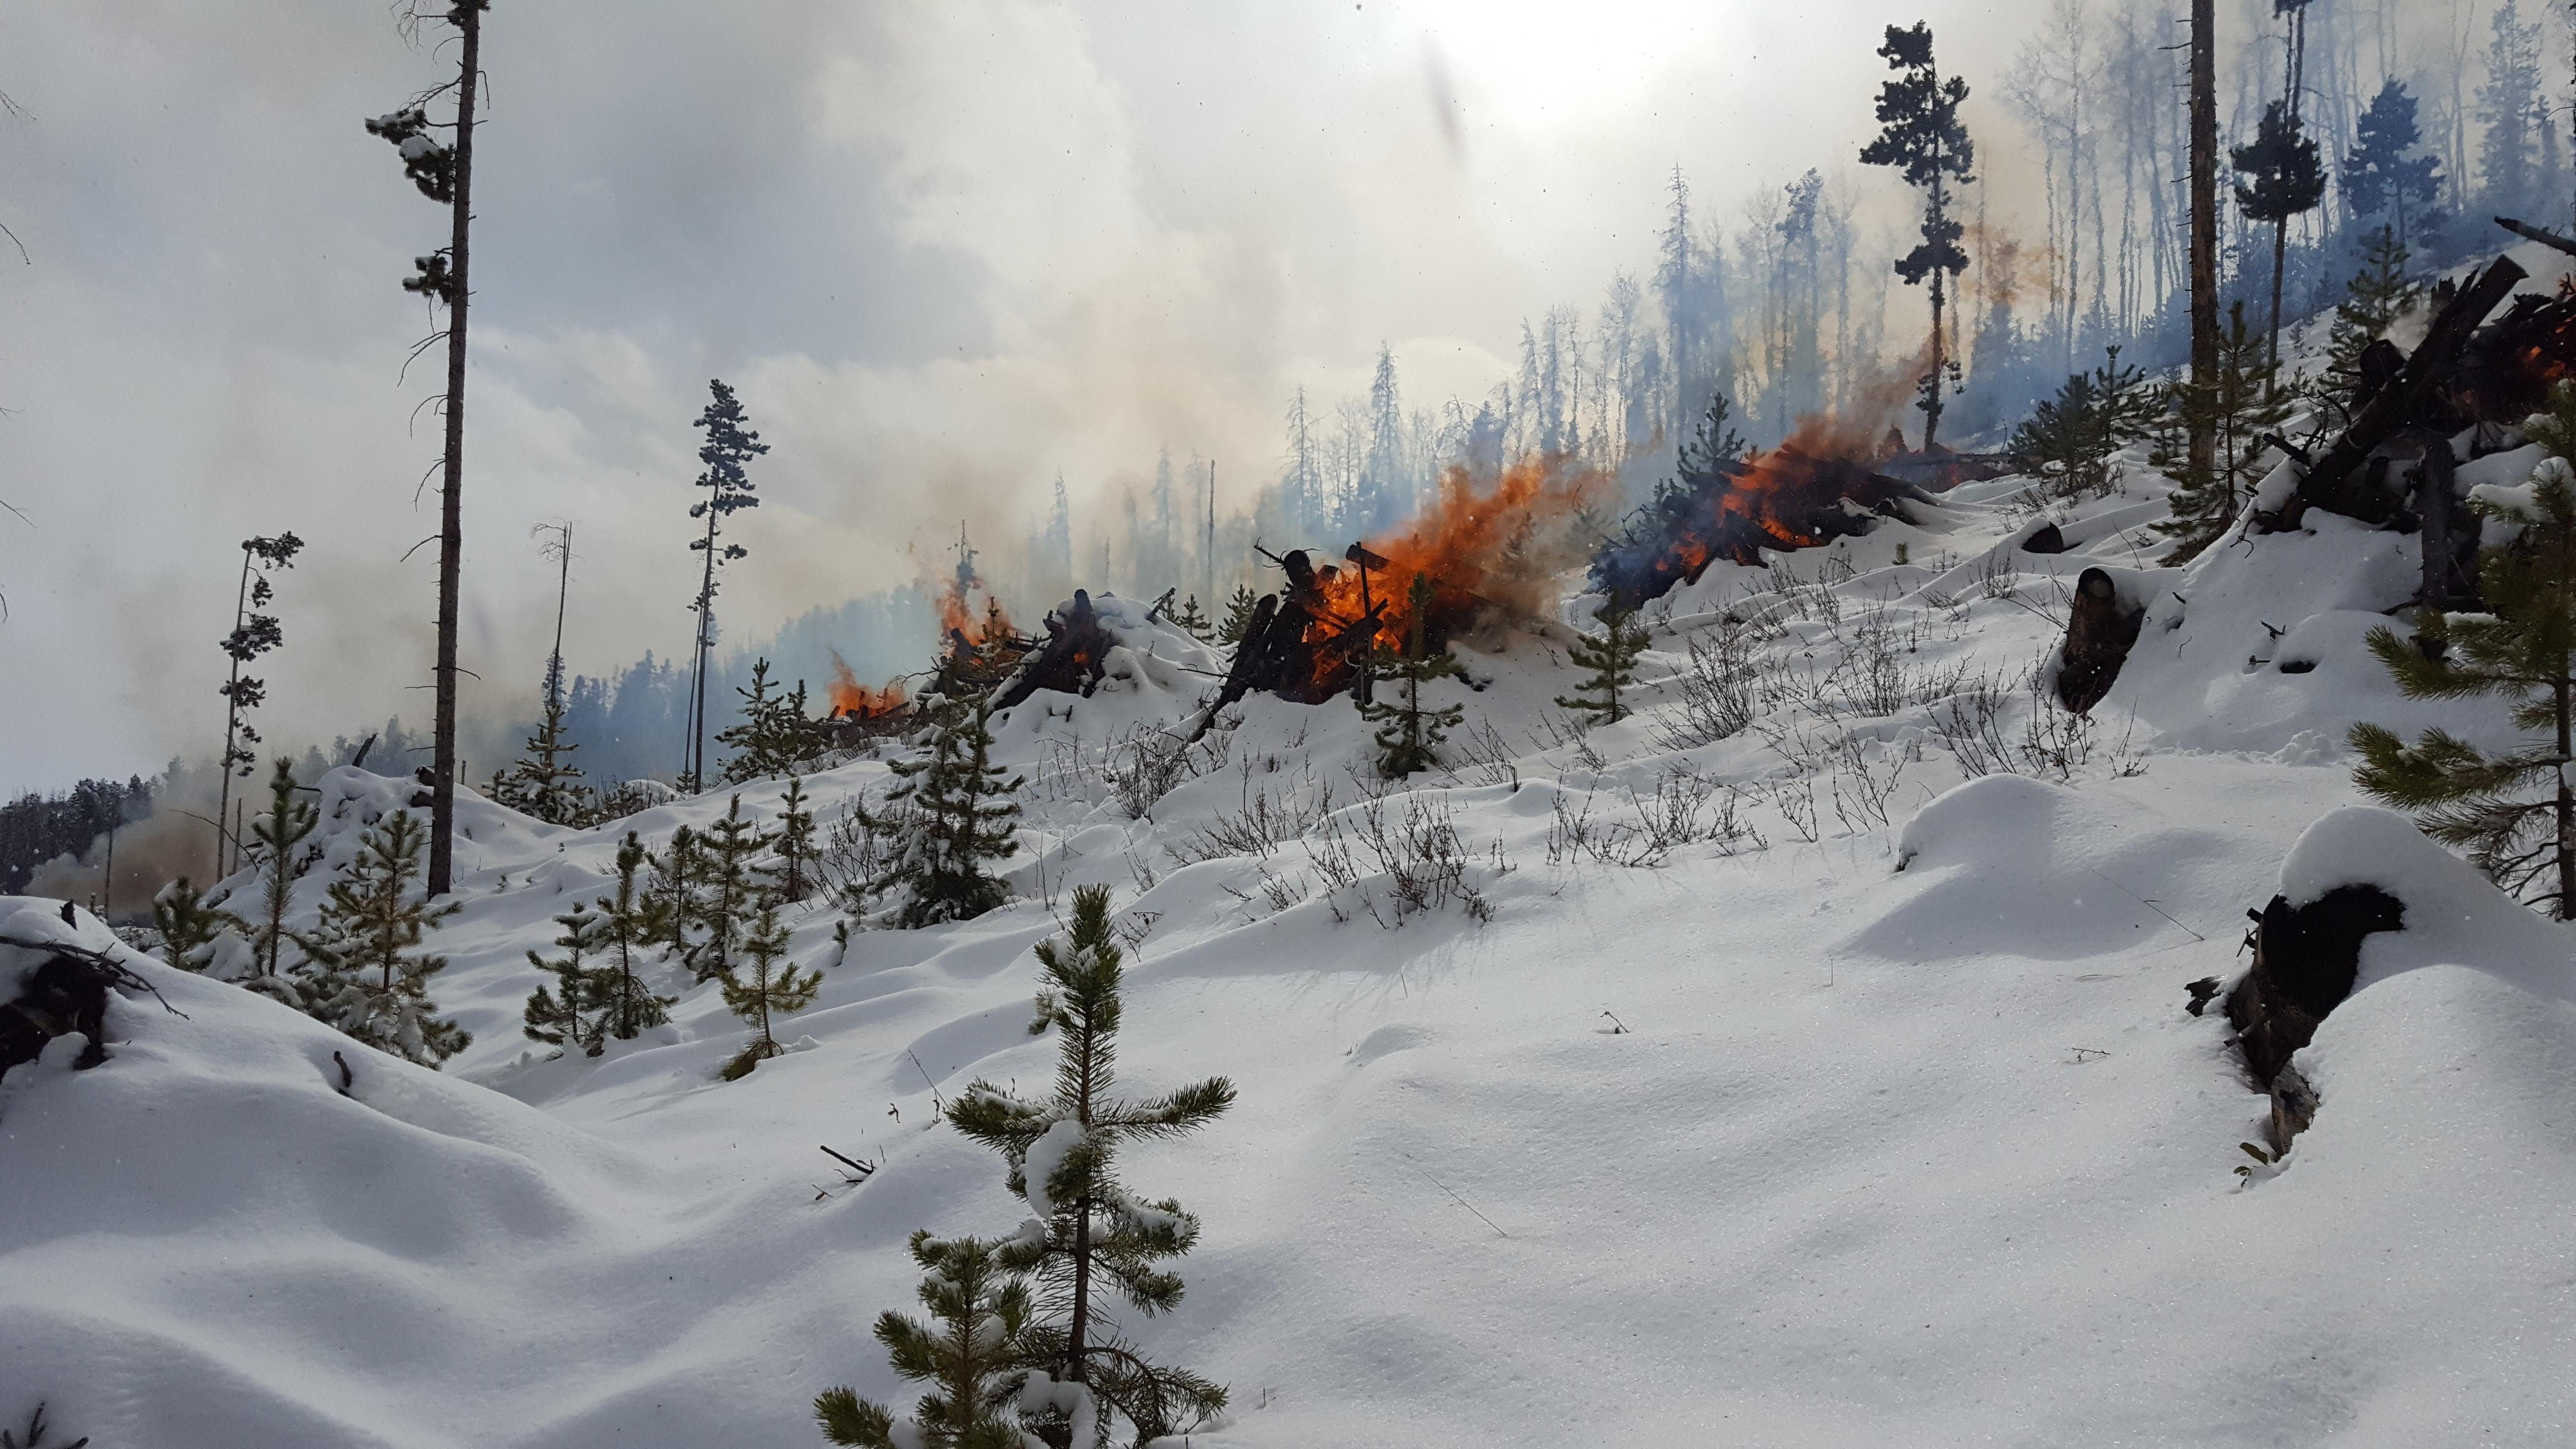 Pile burning in snow with smoke, flames